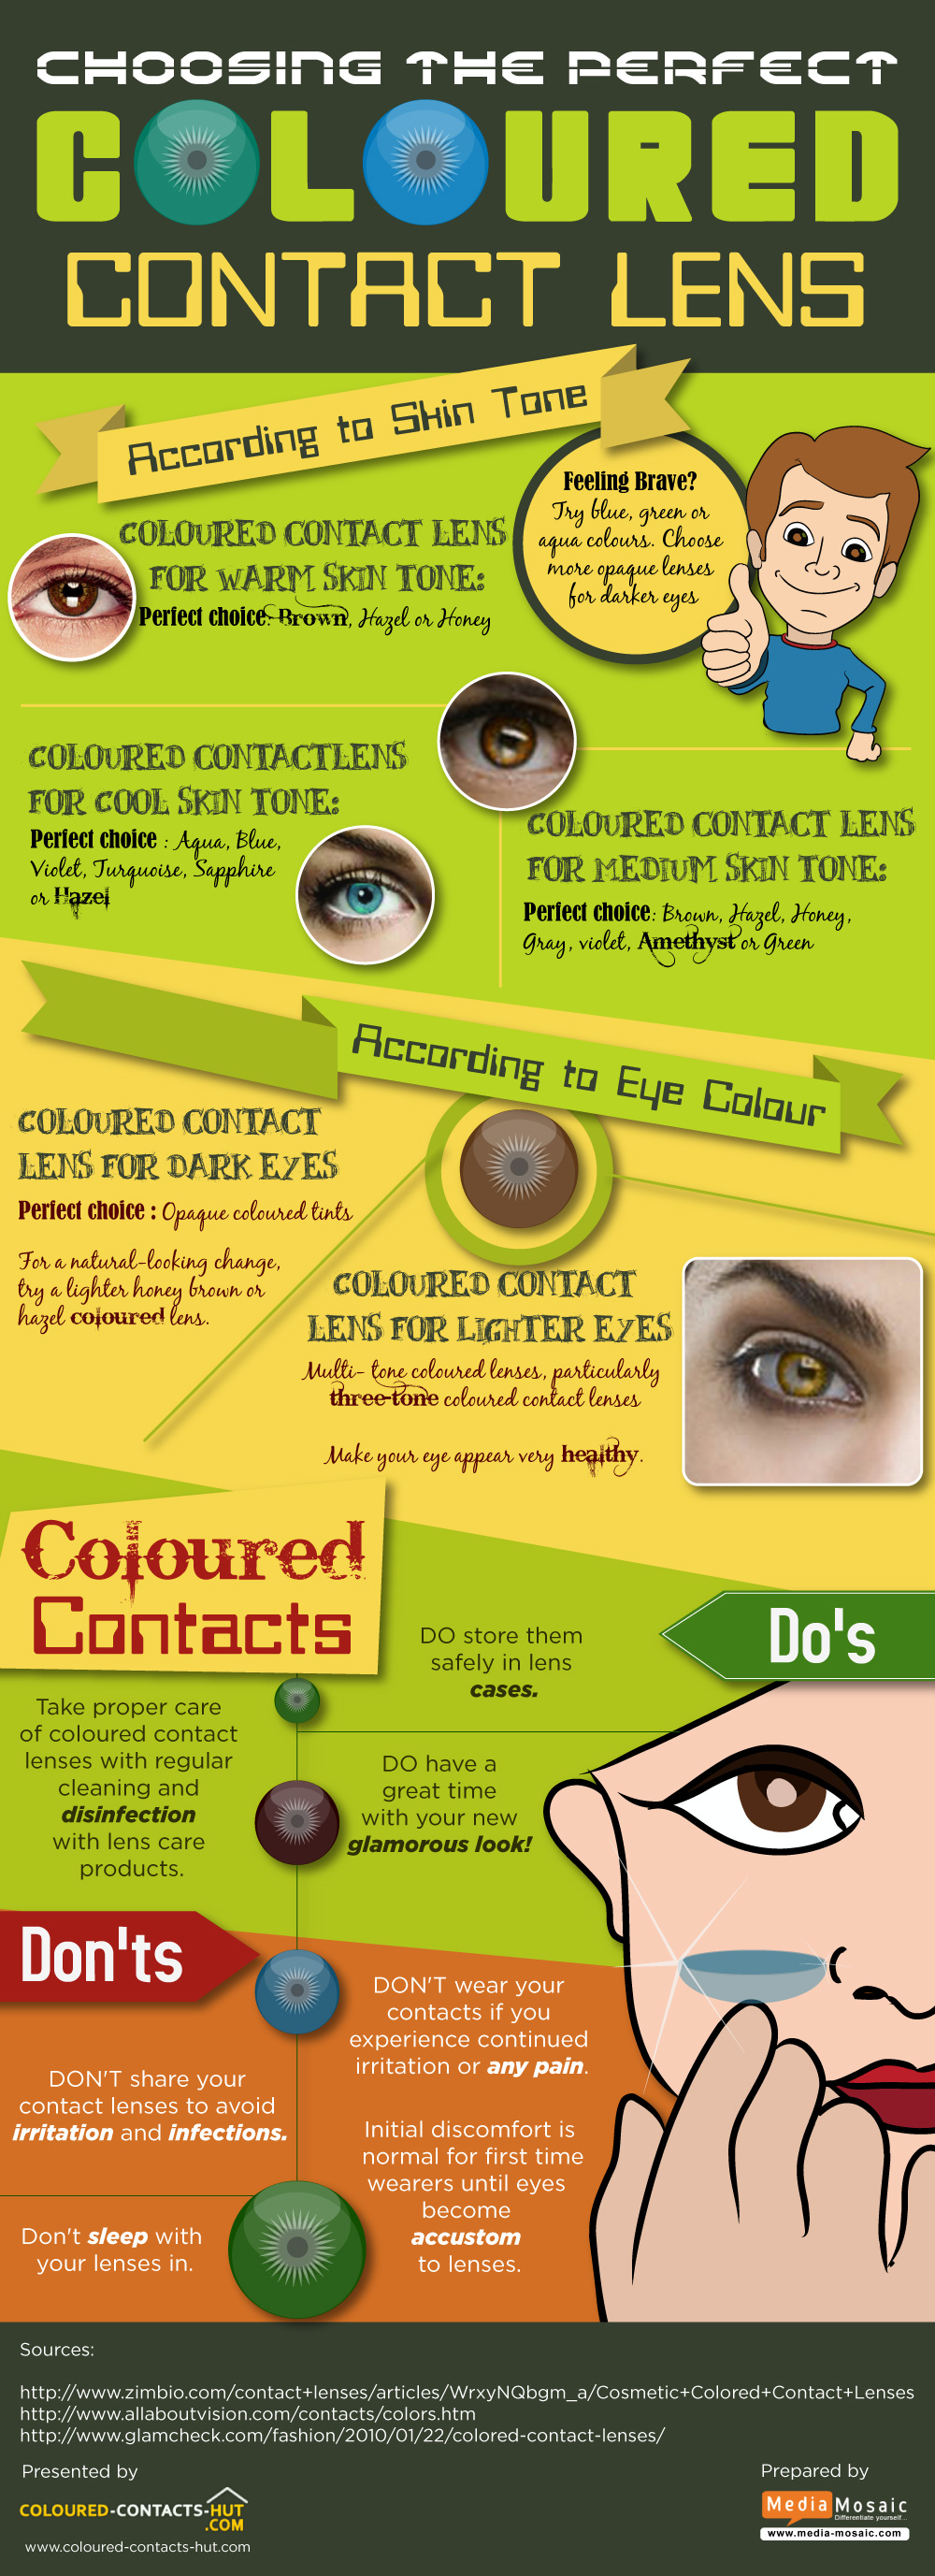 colouredcontacts_revised